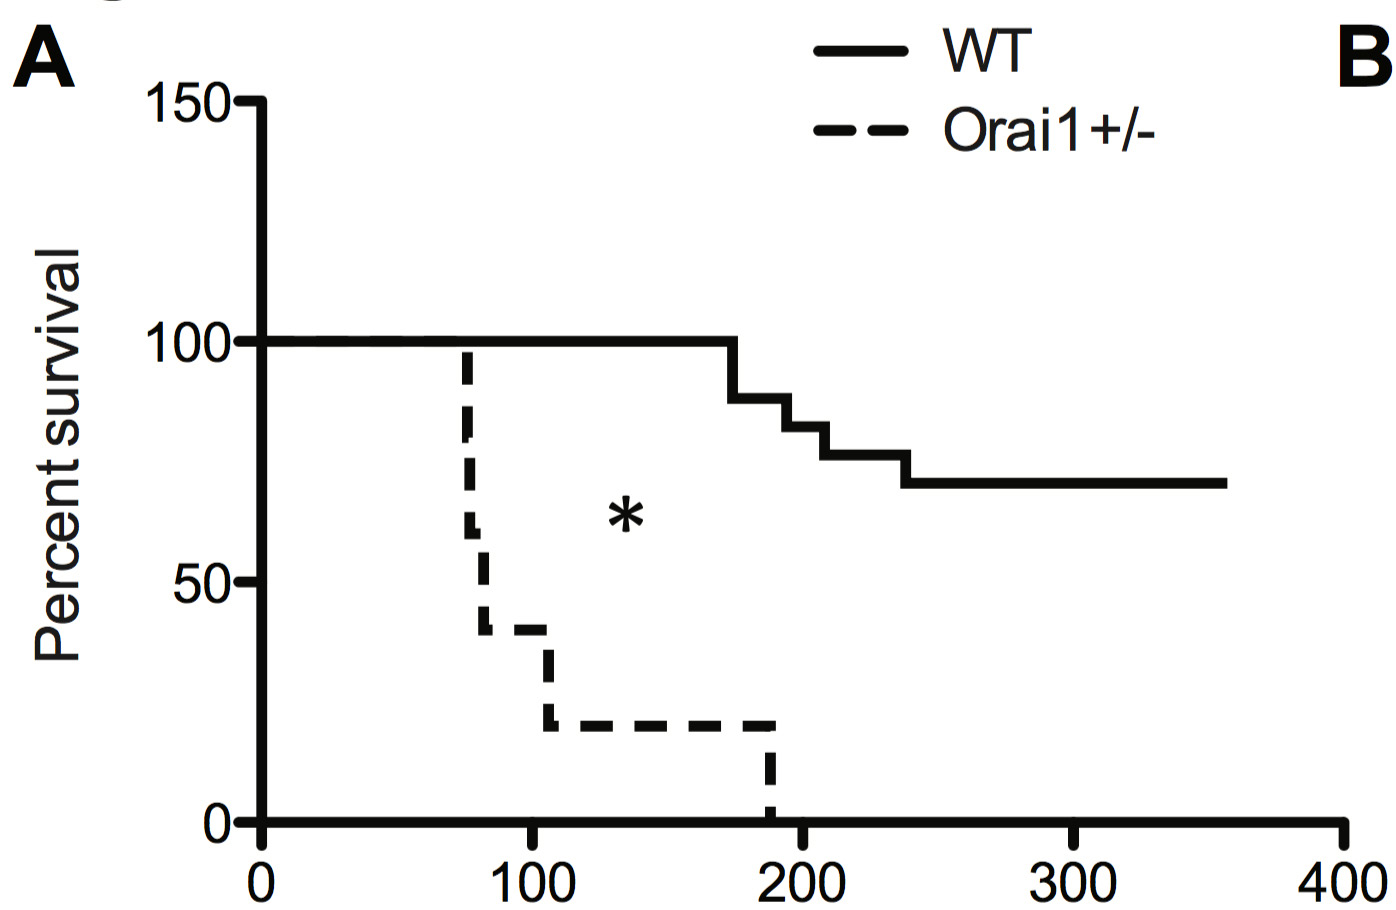 [21] Knock out Orai1 causes rapid left ventricular dilation and early death, in mice modeled for heart failure (TAC).